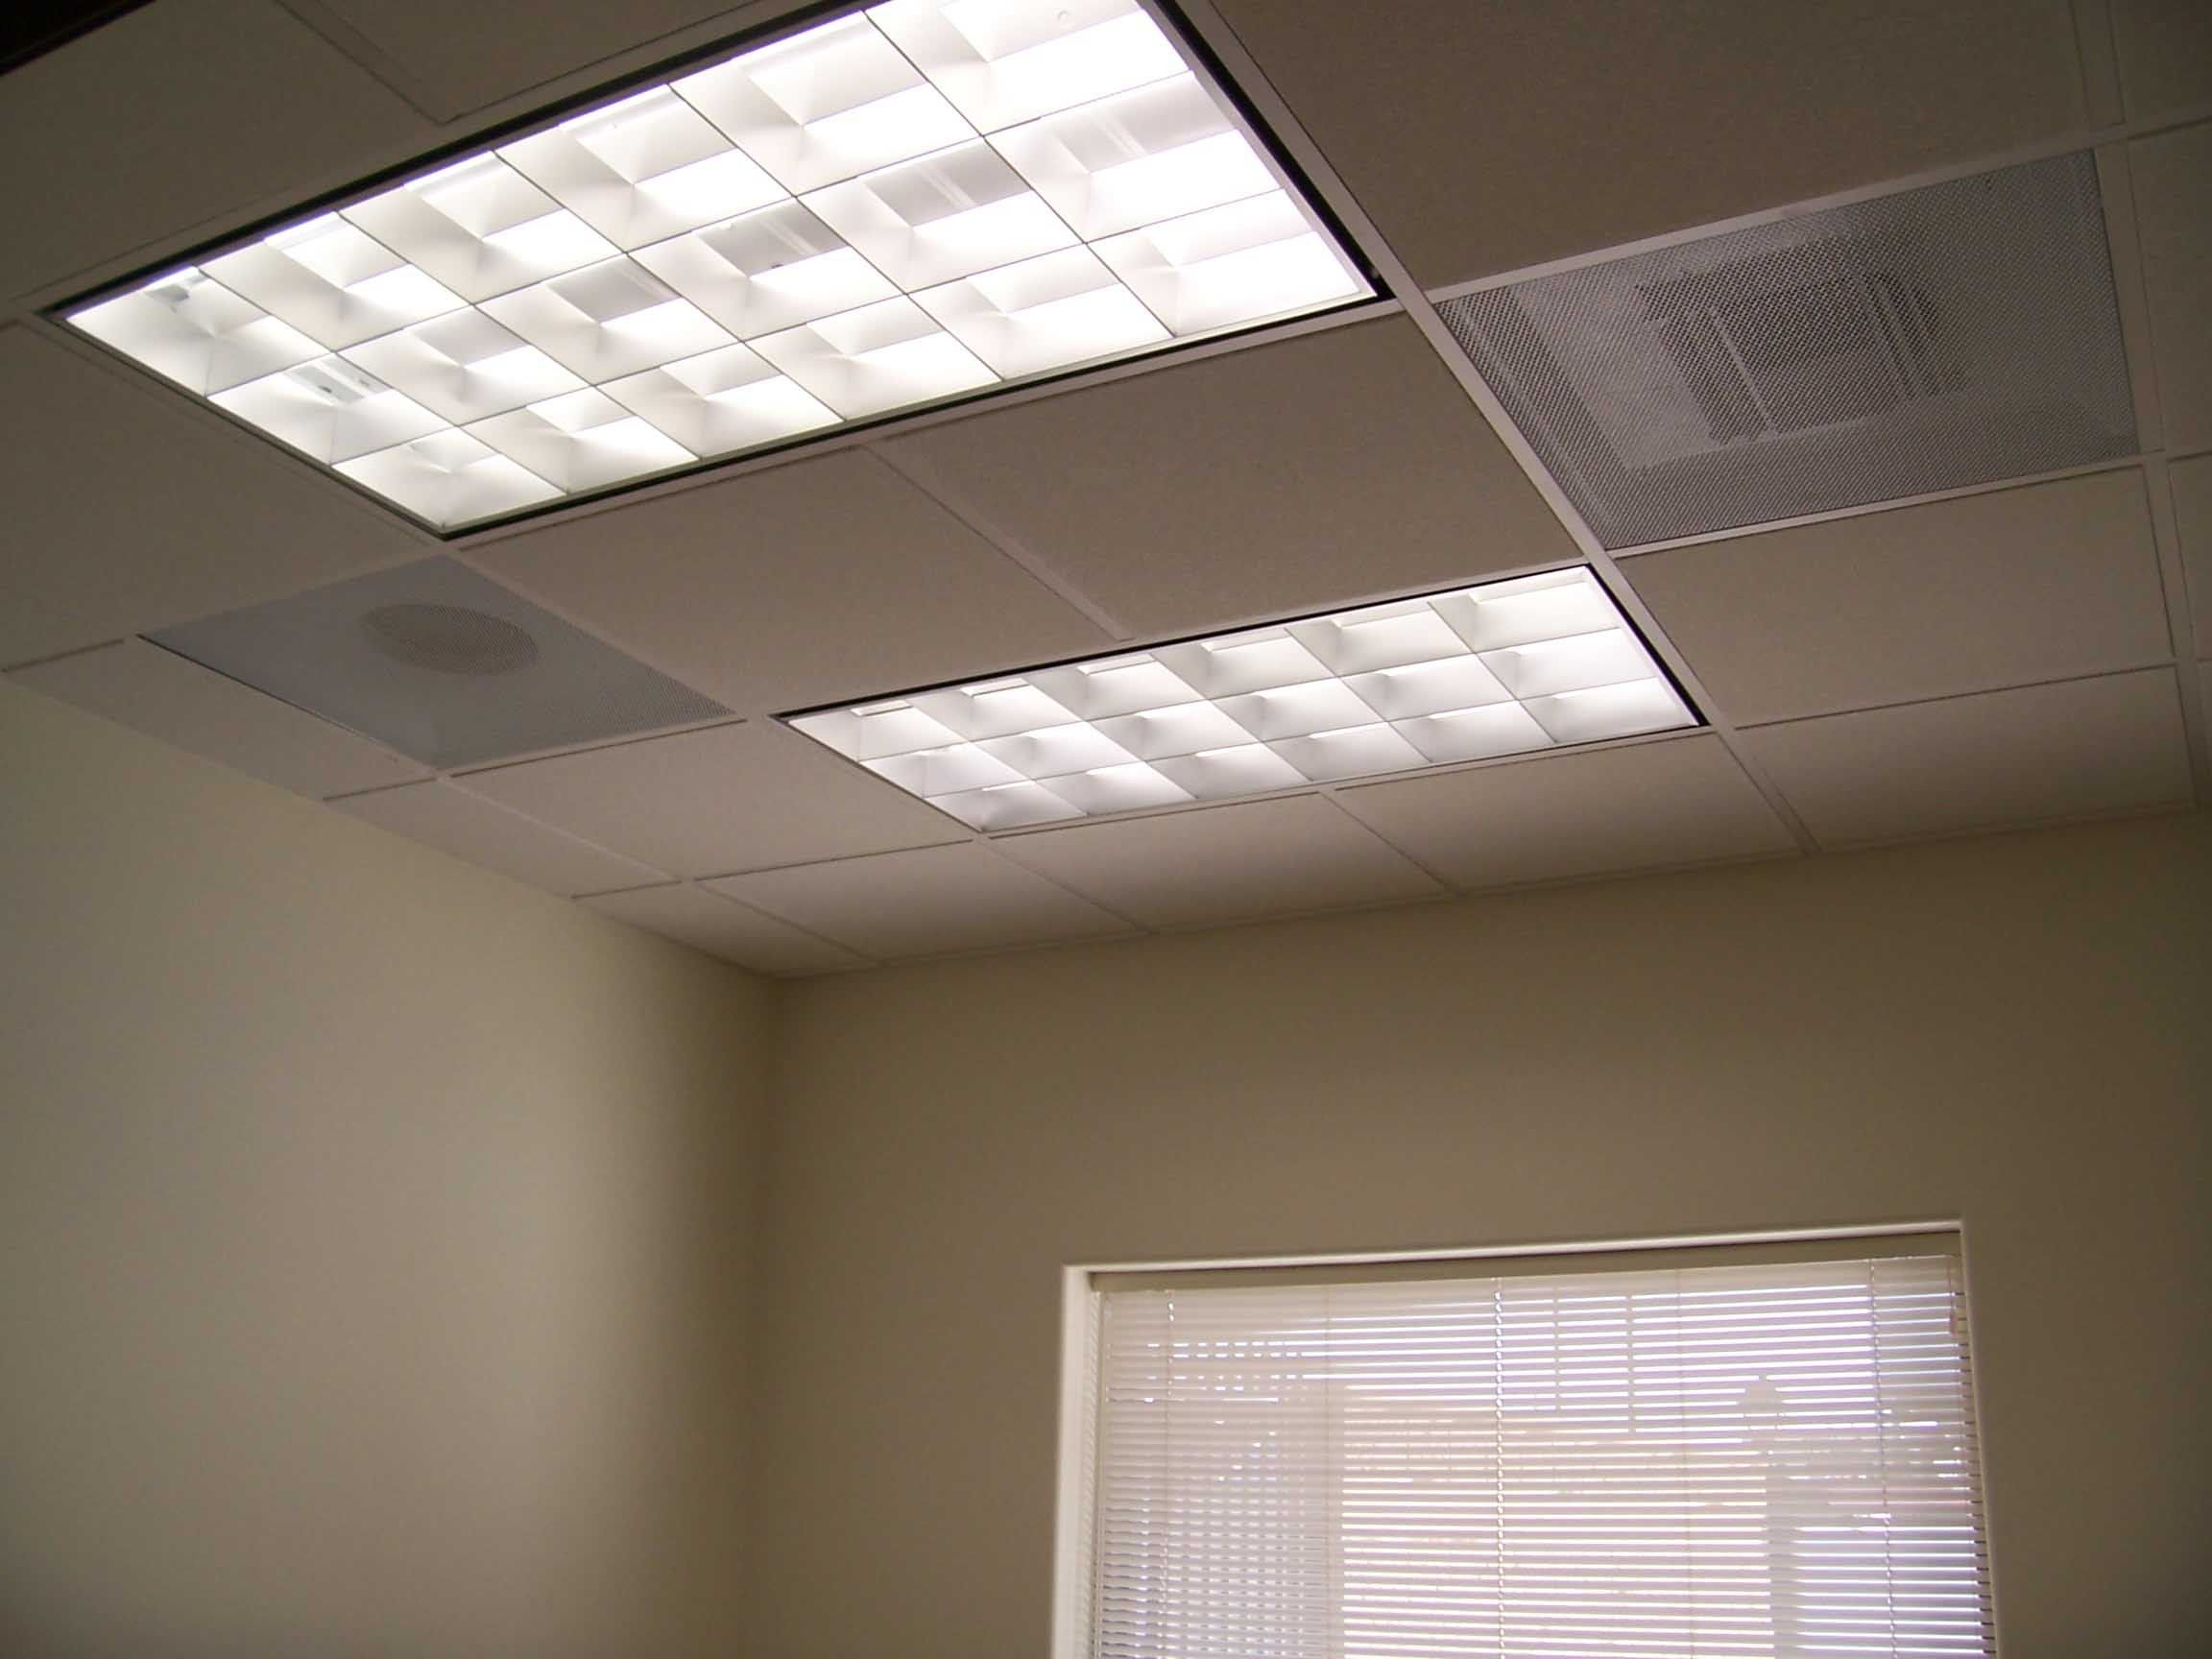 ceilings sizing best lighting lights within fixtures ceiling x suspended light led